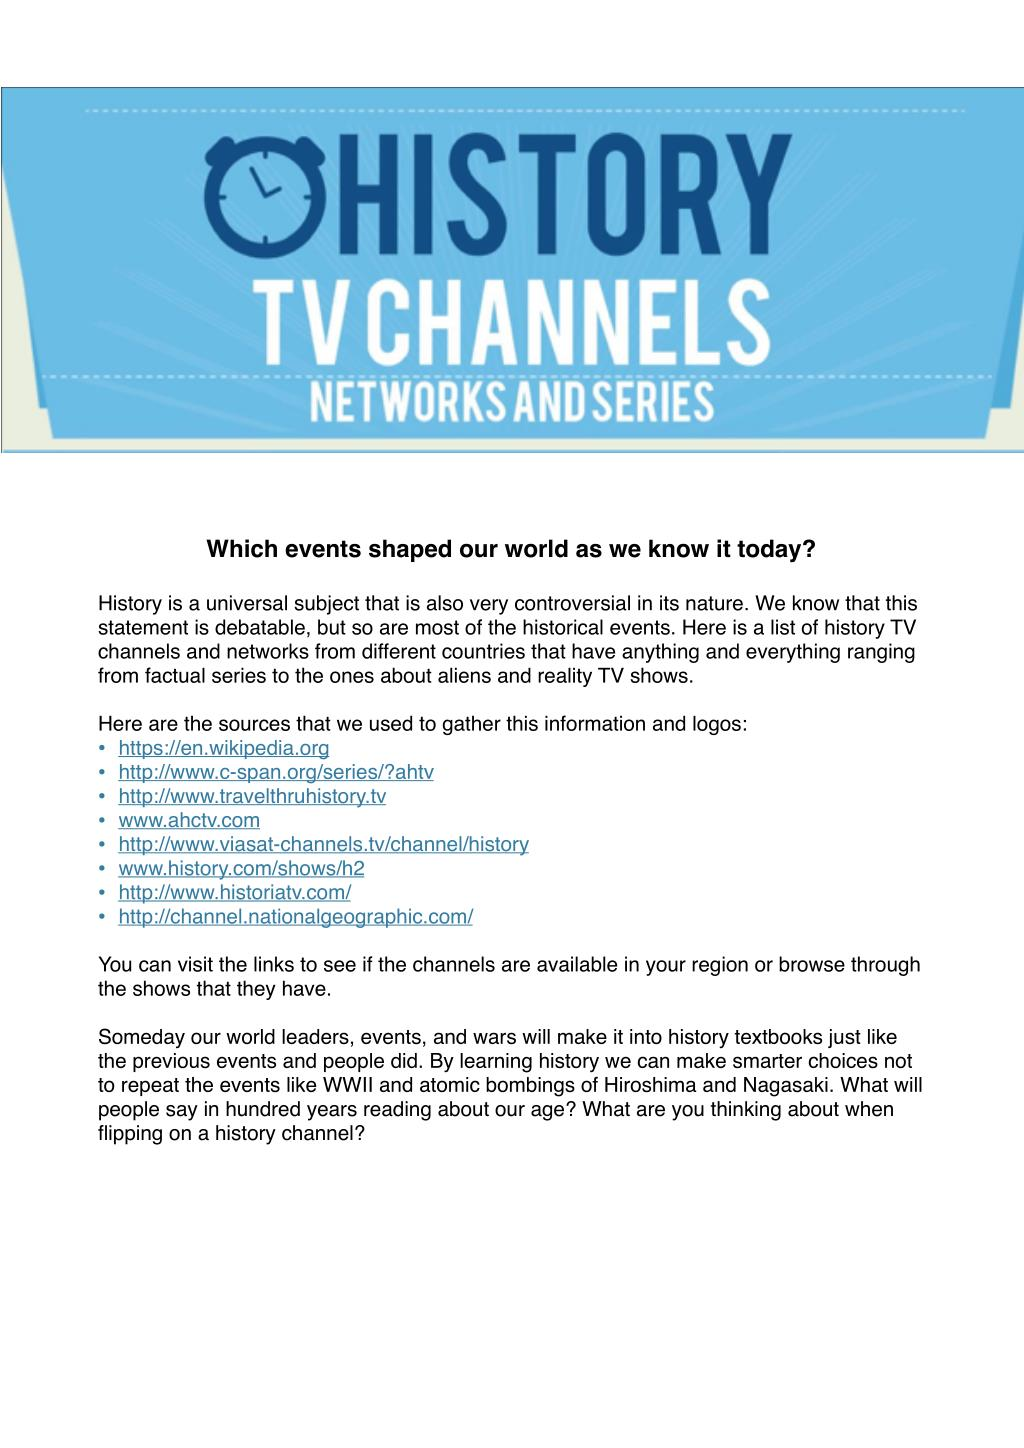 PPT - History Channels, Series, TV Shows by Writers Per Hour